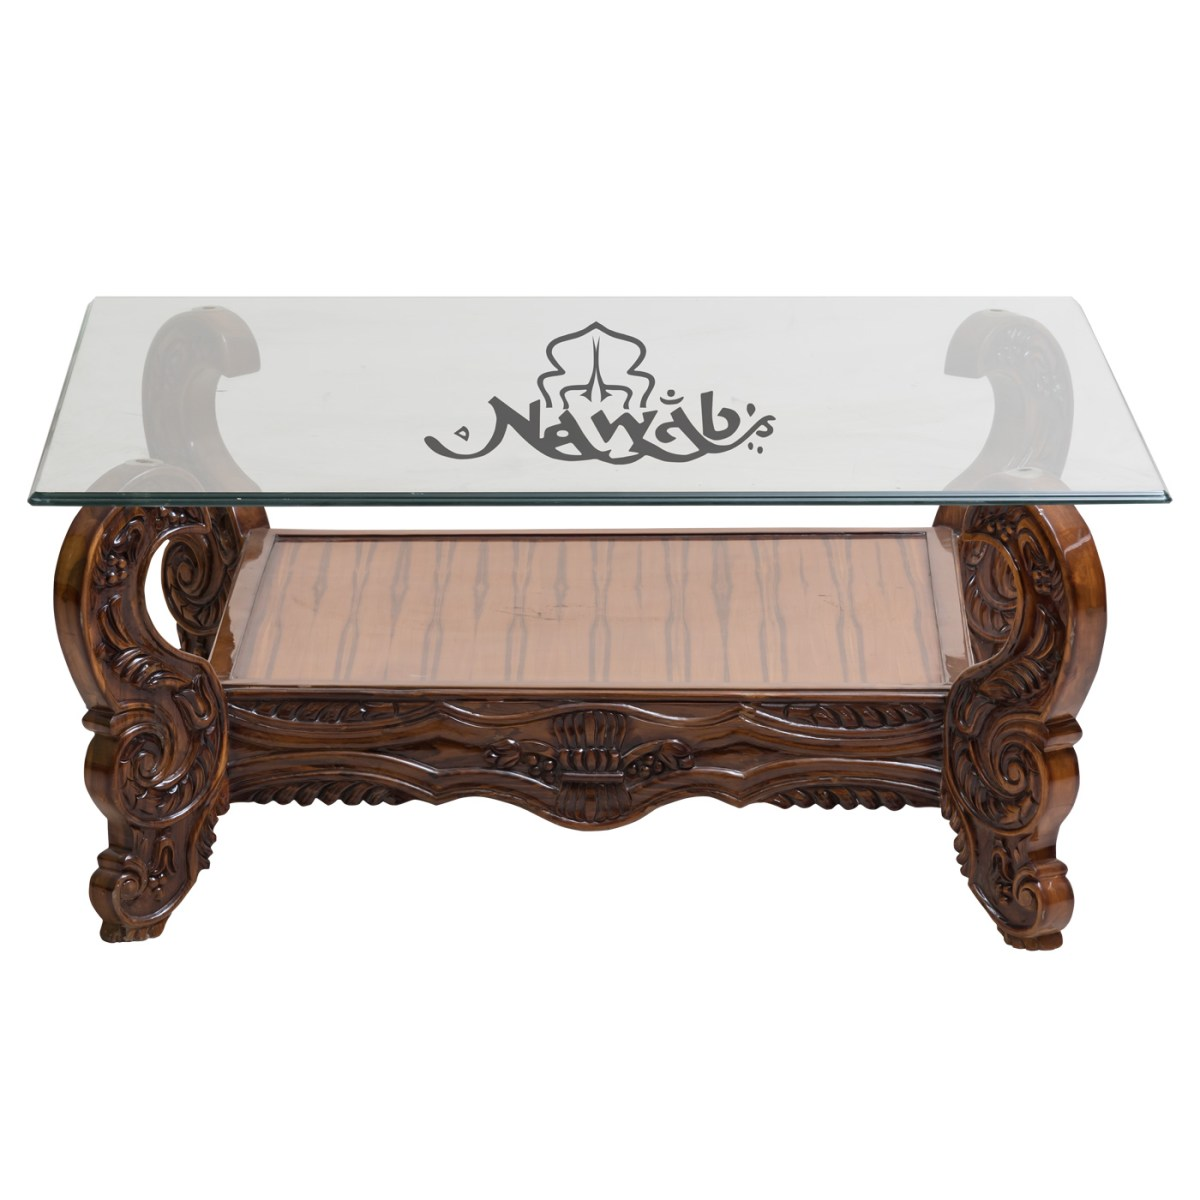 2-seater-solid-teak-wood-customised-carving-walnut-shaded-pu-polish-jacquart-upholstery-centre-table-glass-top-with-carving-on-4-sides-coffee-table